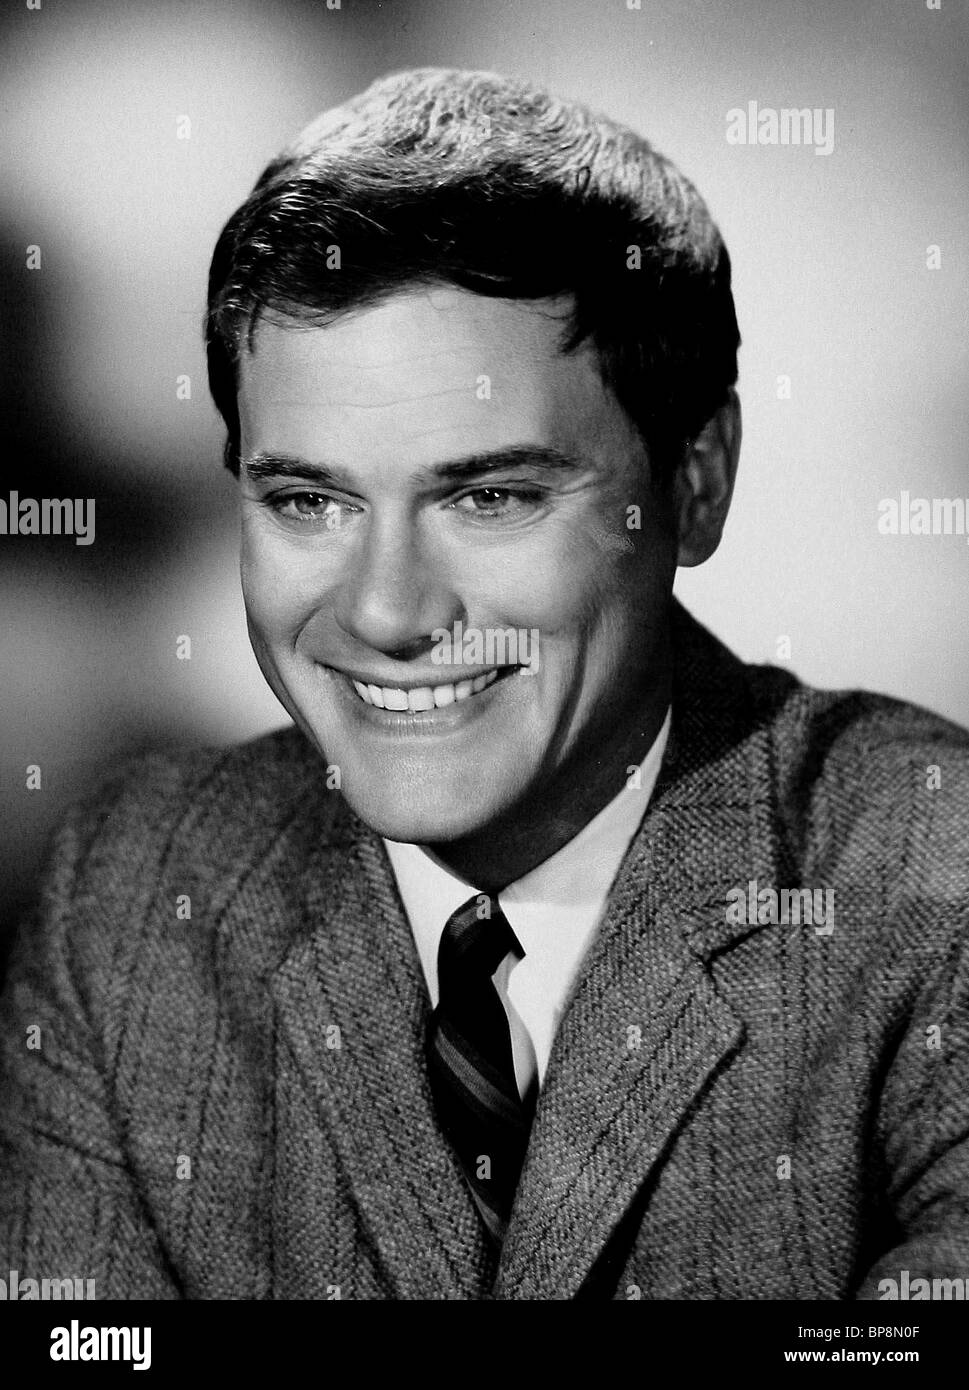 LARRY HAGMAN I DREAM OF JEANNIE (1969 Stock Photo, Royalty ...